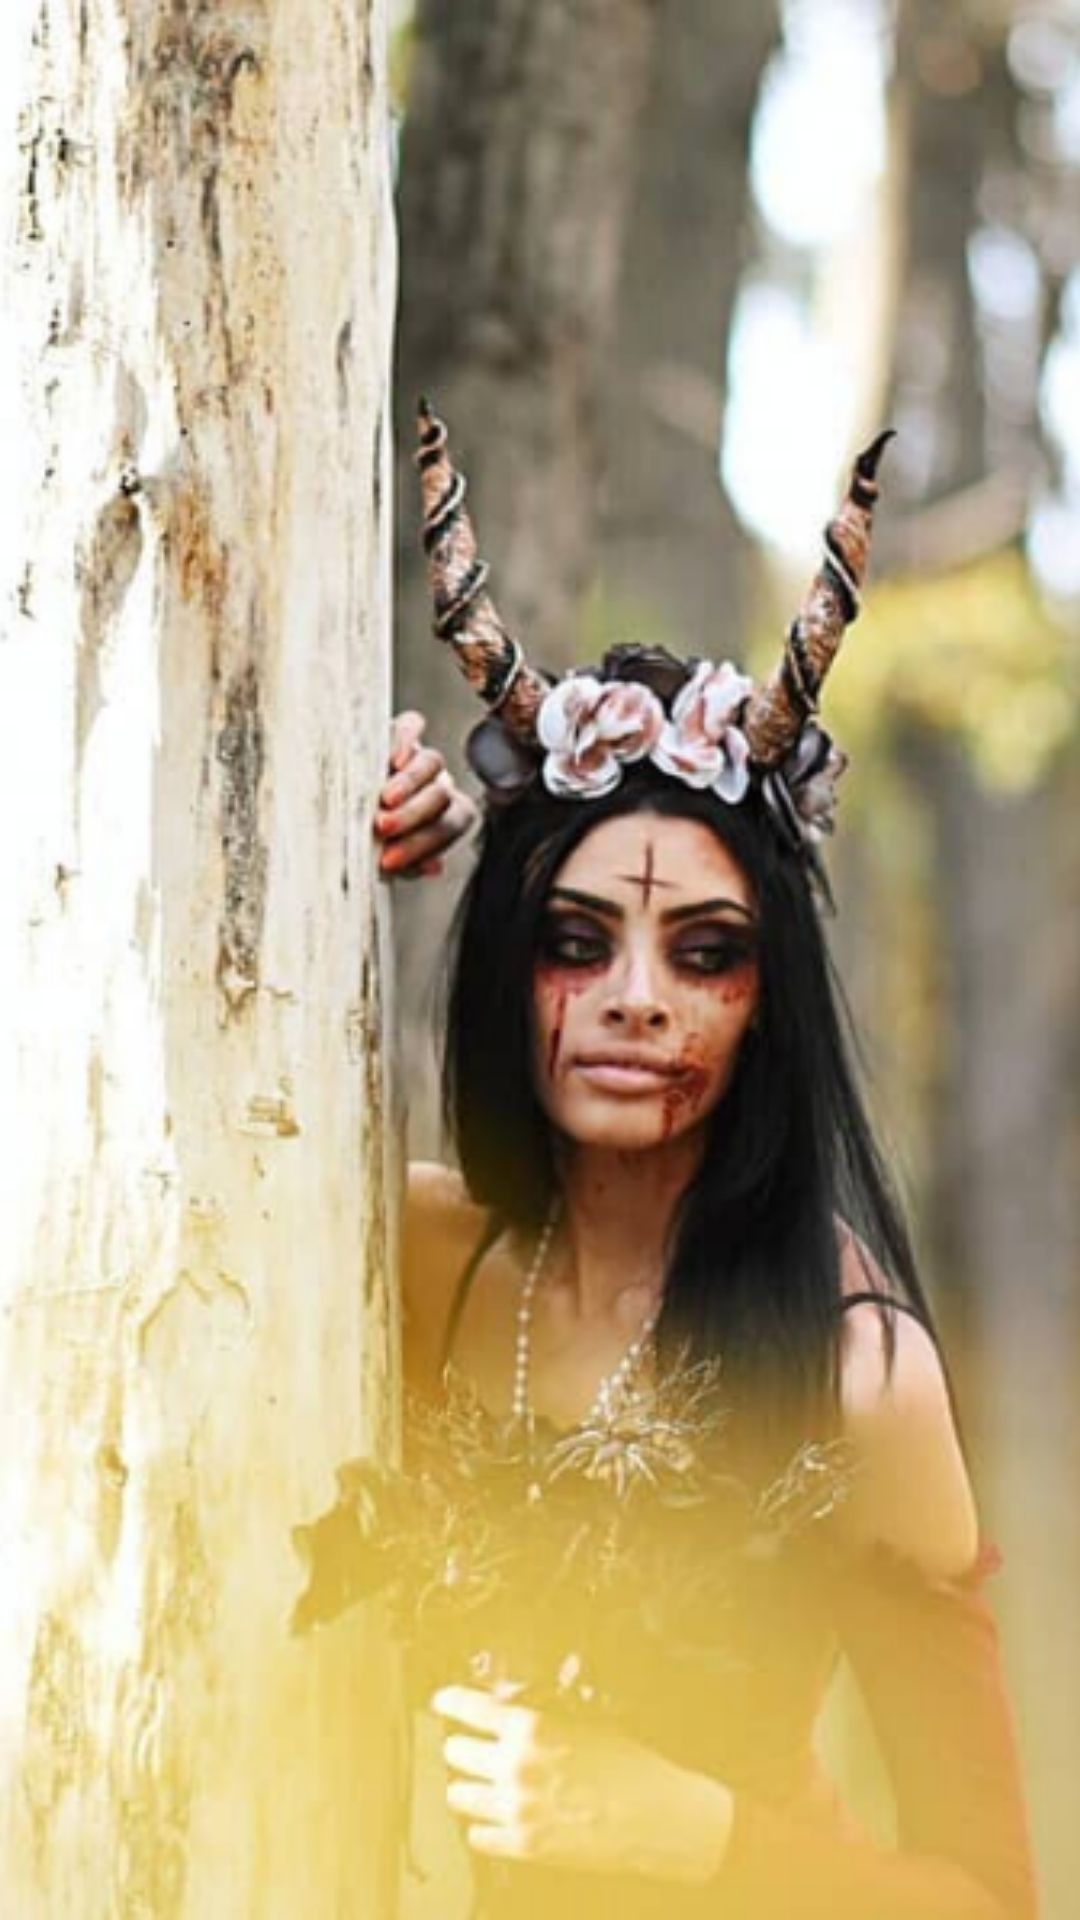 Teenage girl Halloween costumes to make you stand out